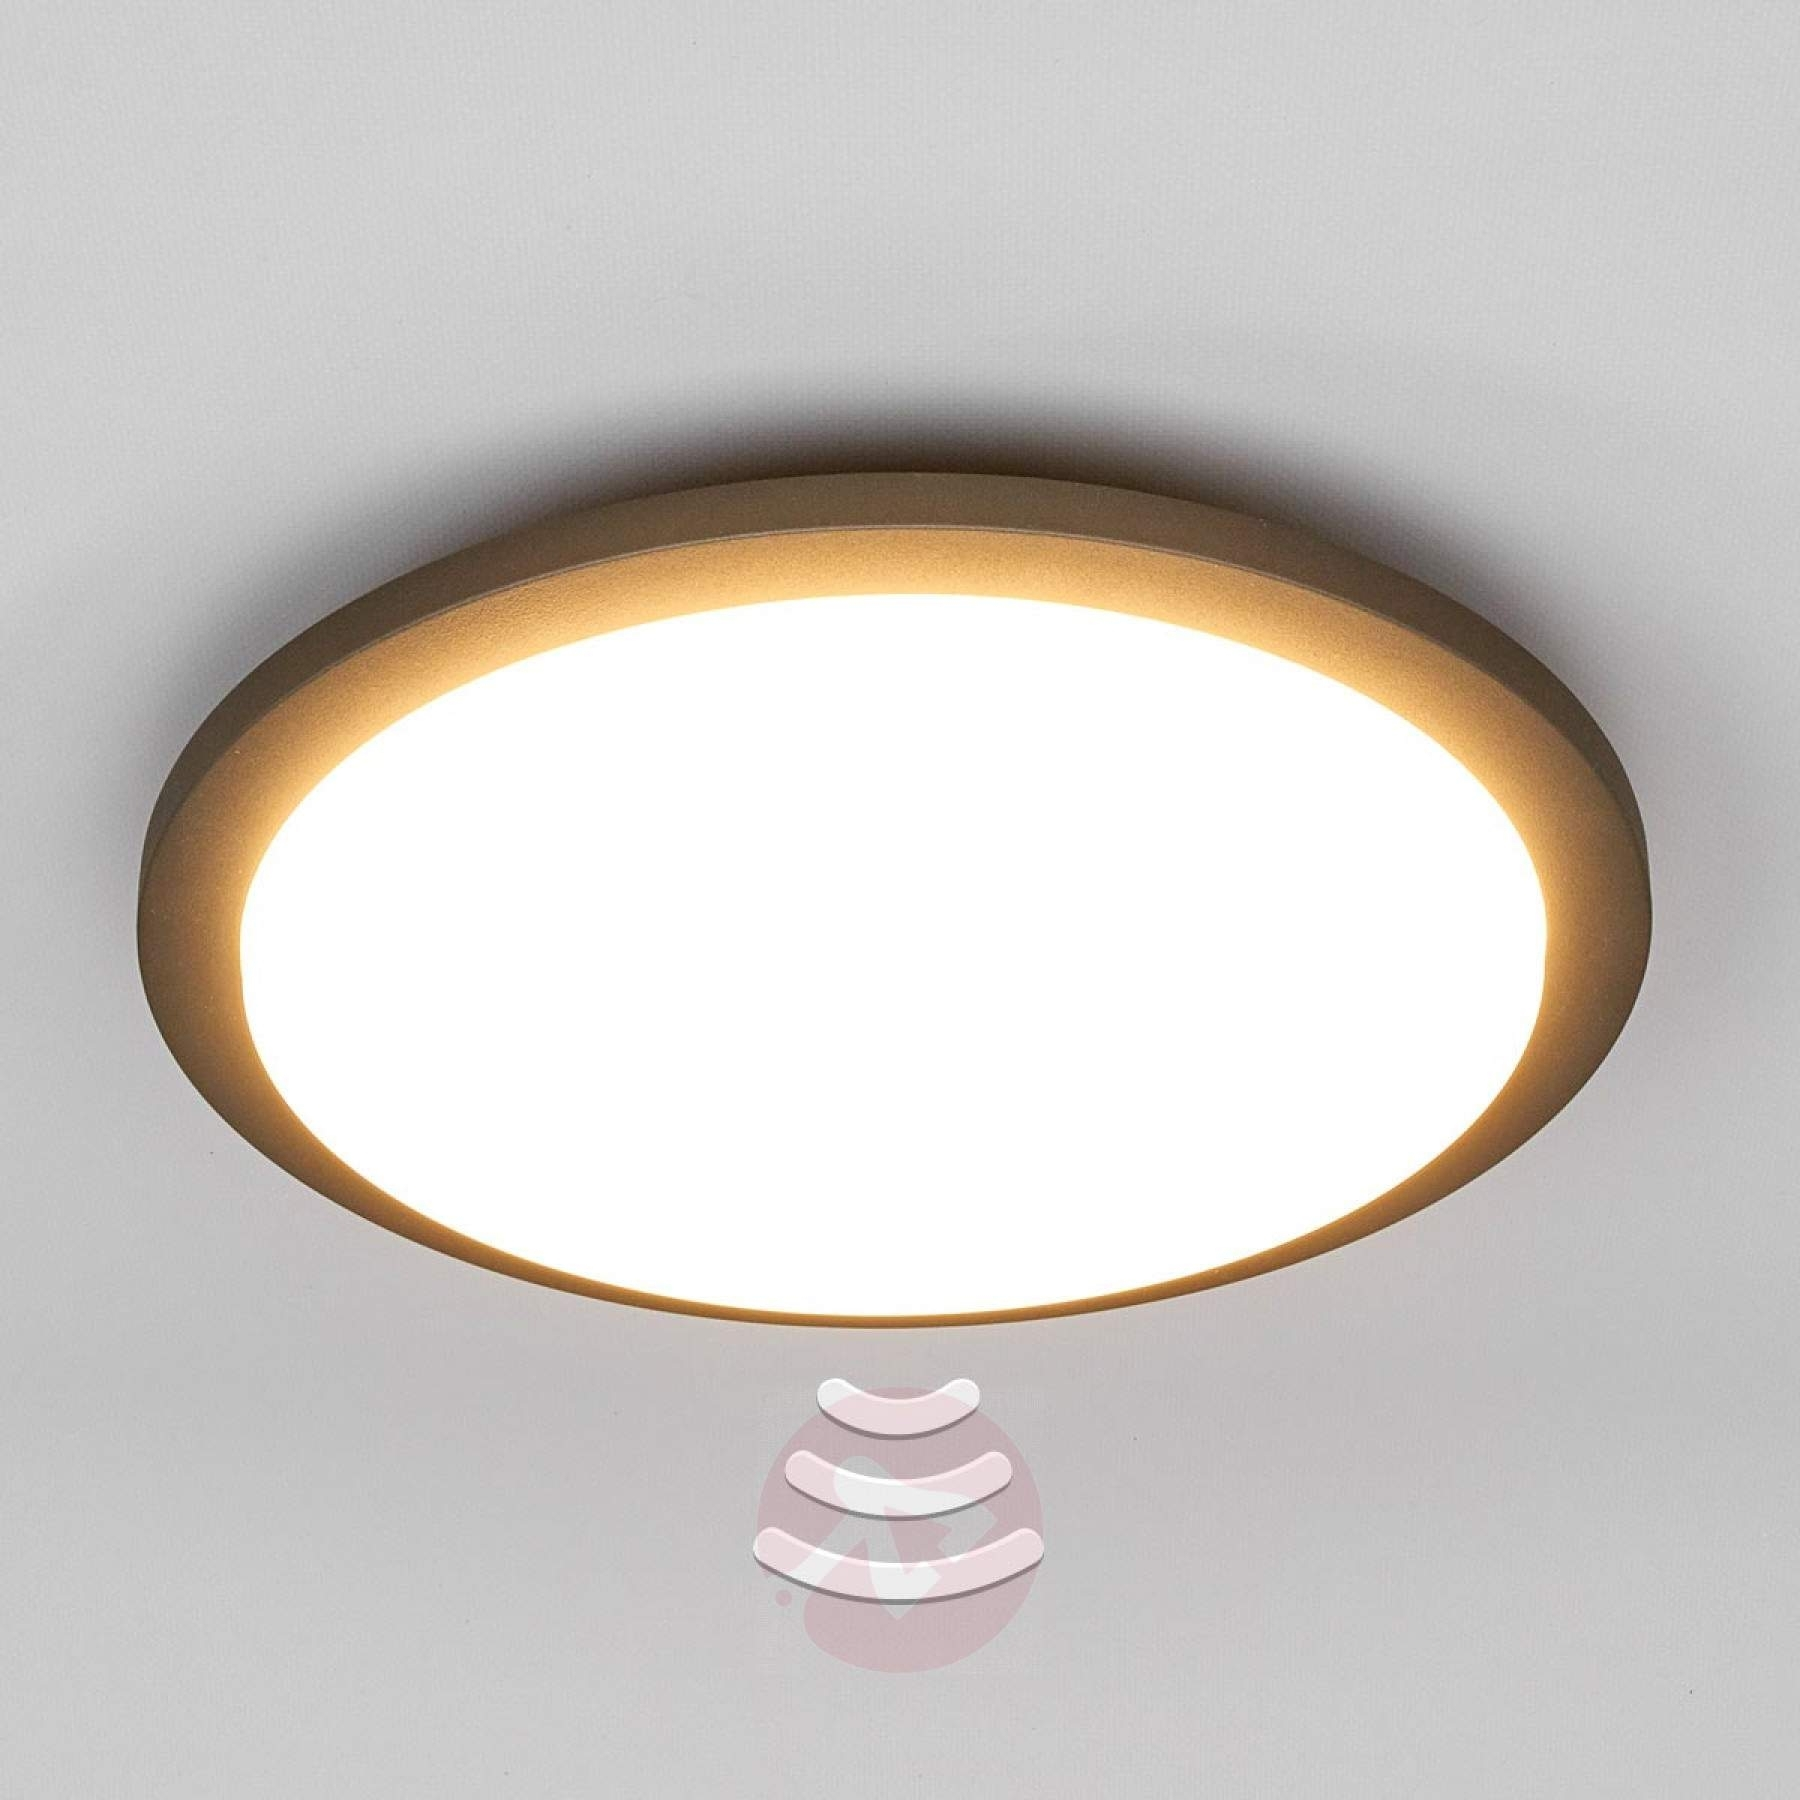 Benton – Led Outdoor Ceiling Light With Sensor | Lights.co (#3 of 15)